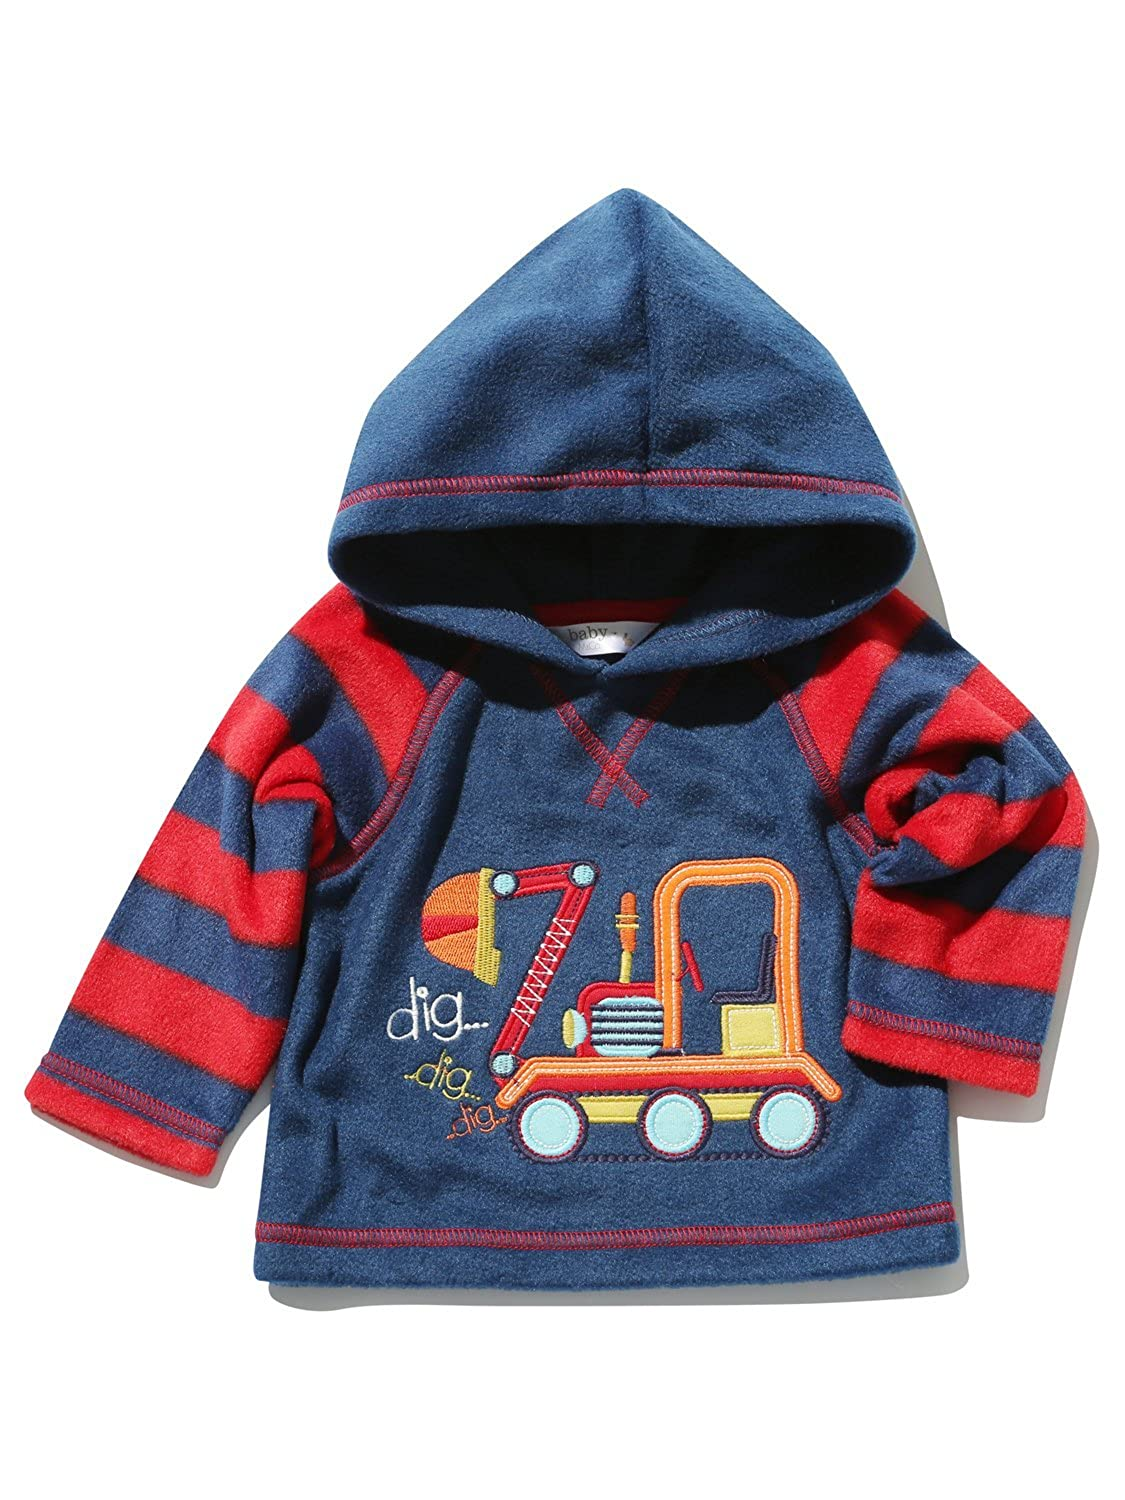 M& Co Baby Boy Navy Red Stripe Long Sleeve Digger Applique Hooded Pull On Fleece Top